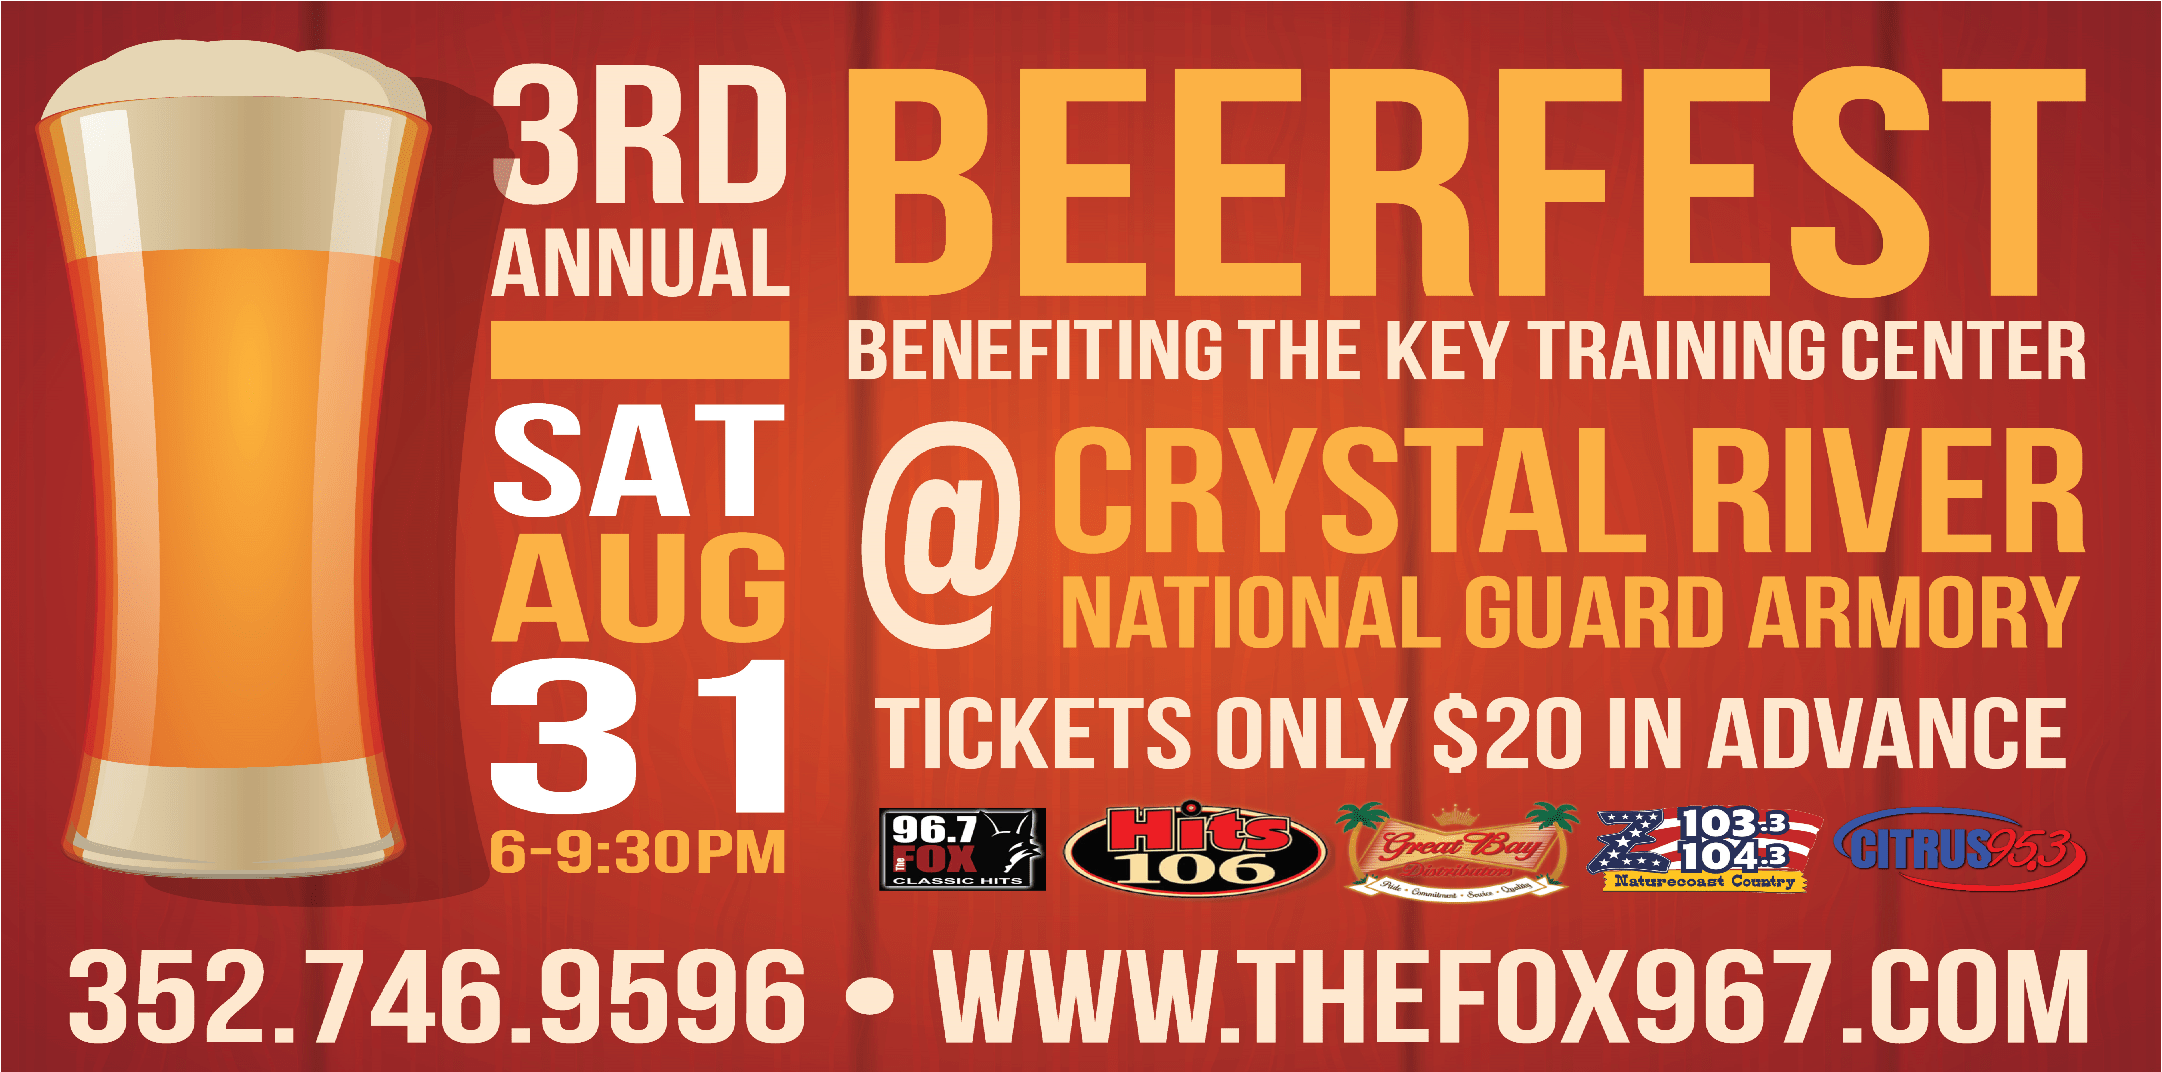 The Fox 96.7 Beerfest